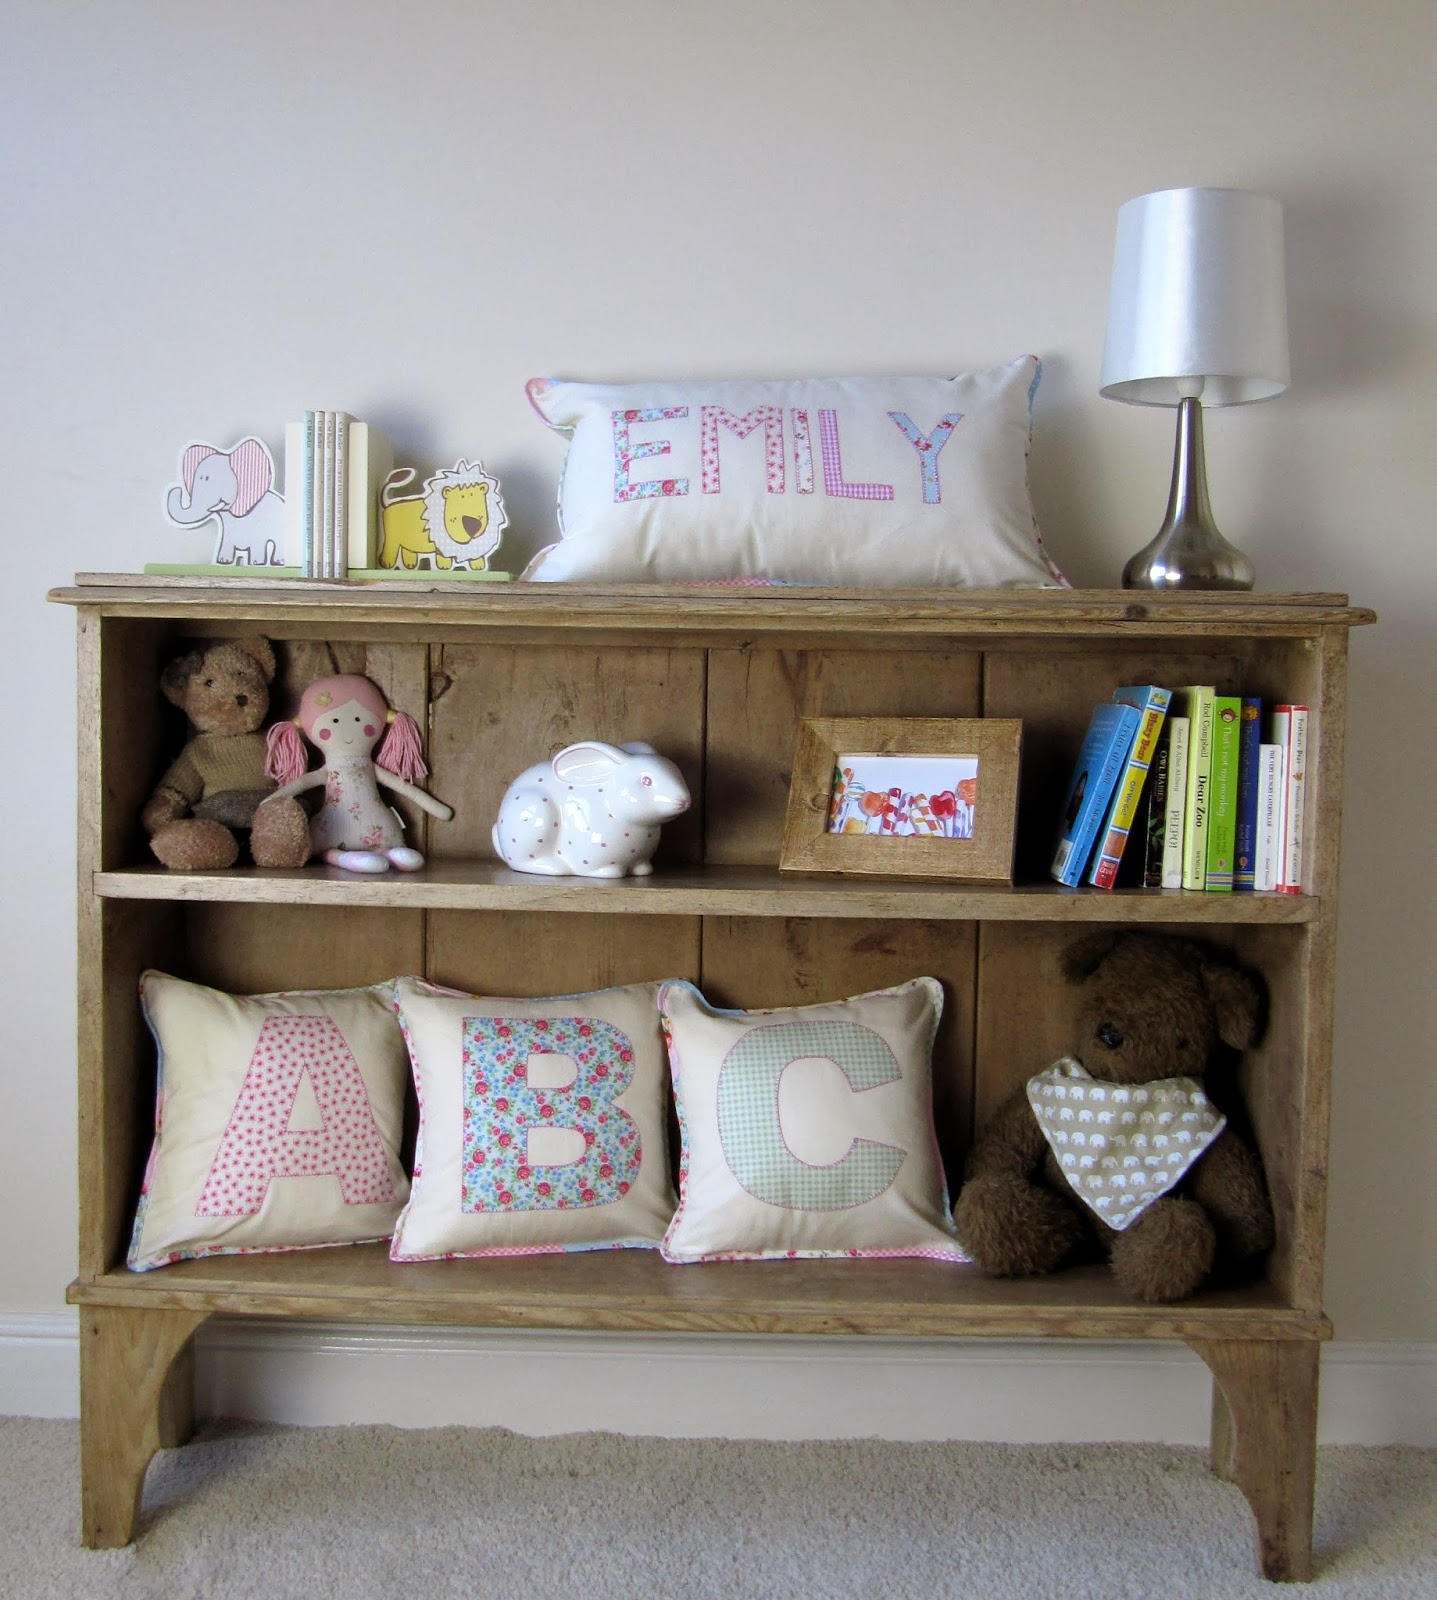 nursery shelves with monogrammed pillows